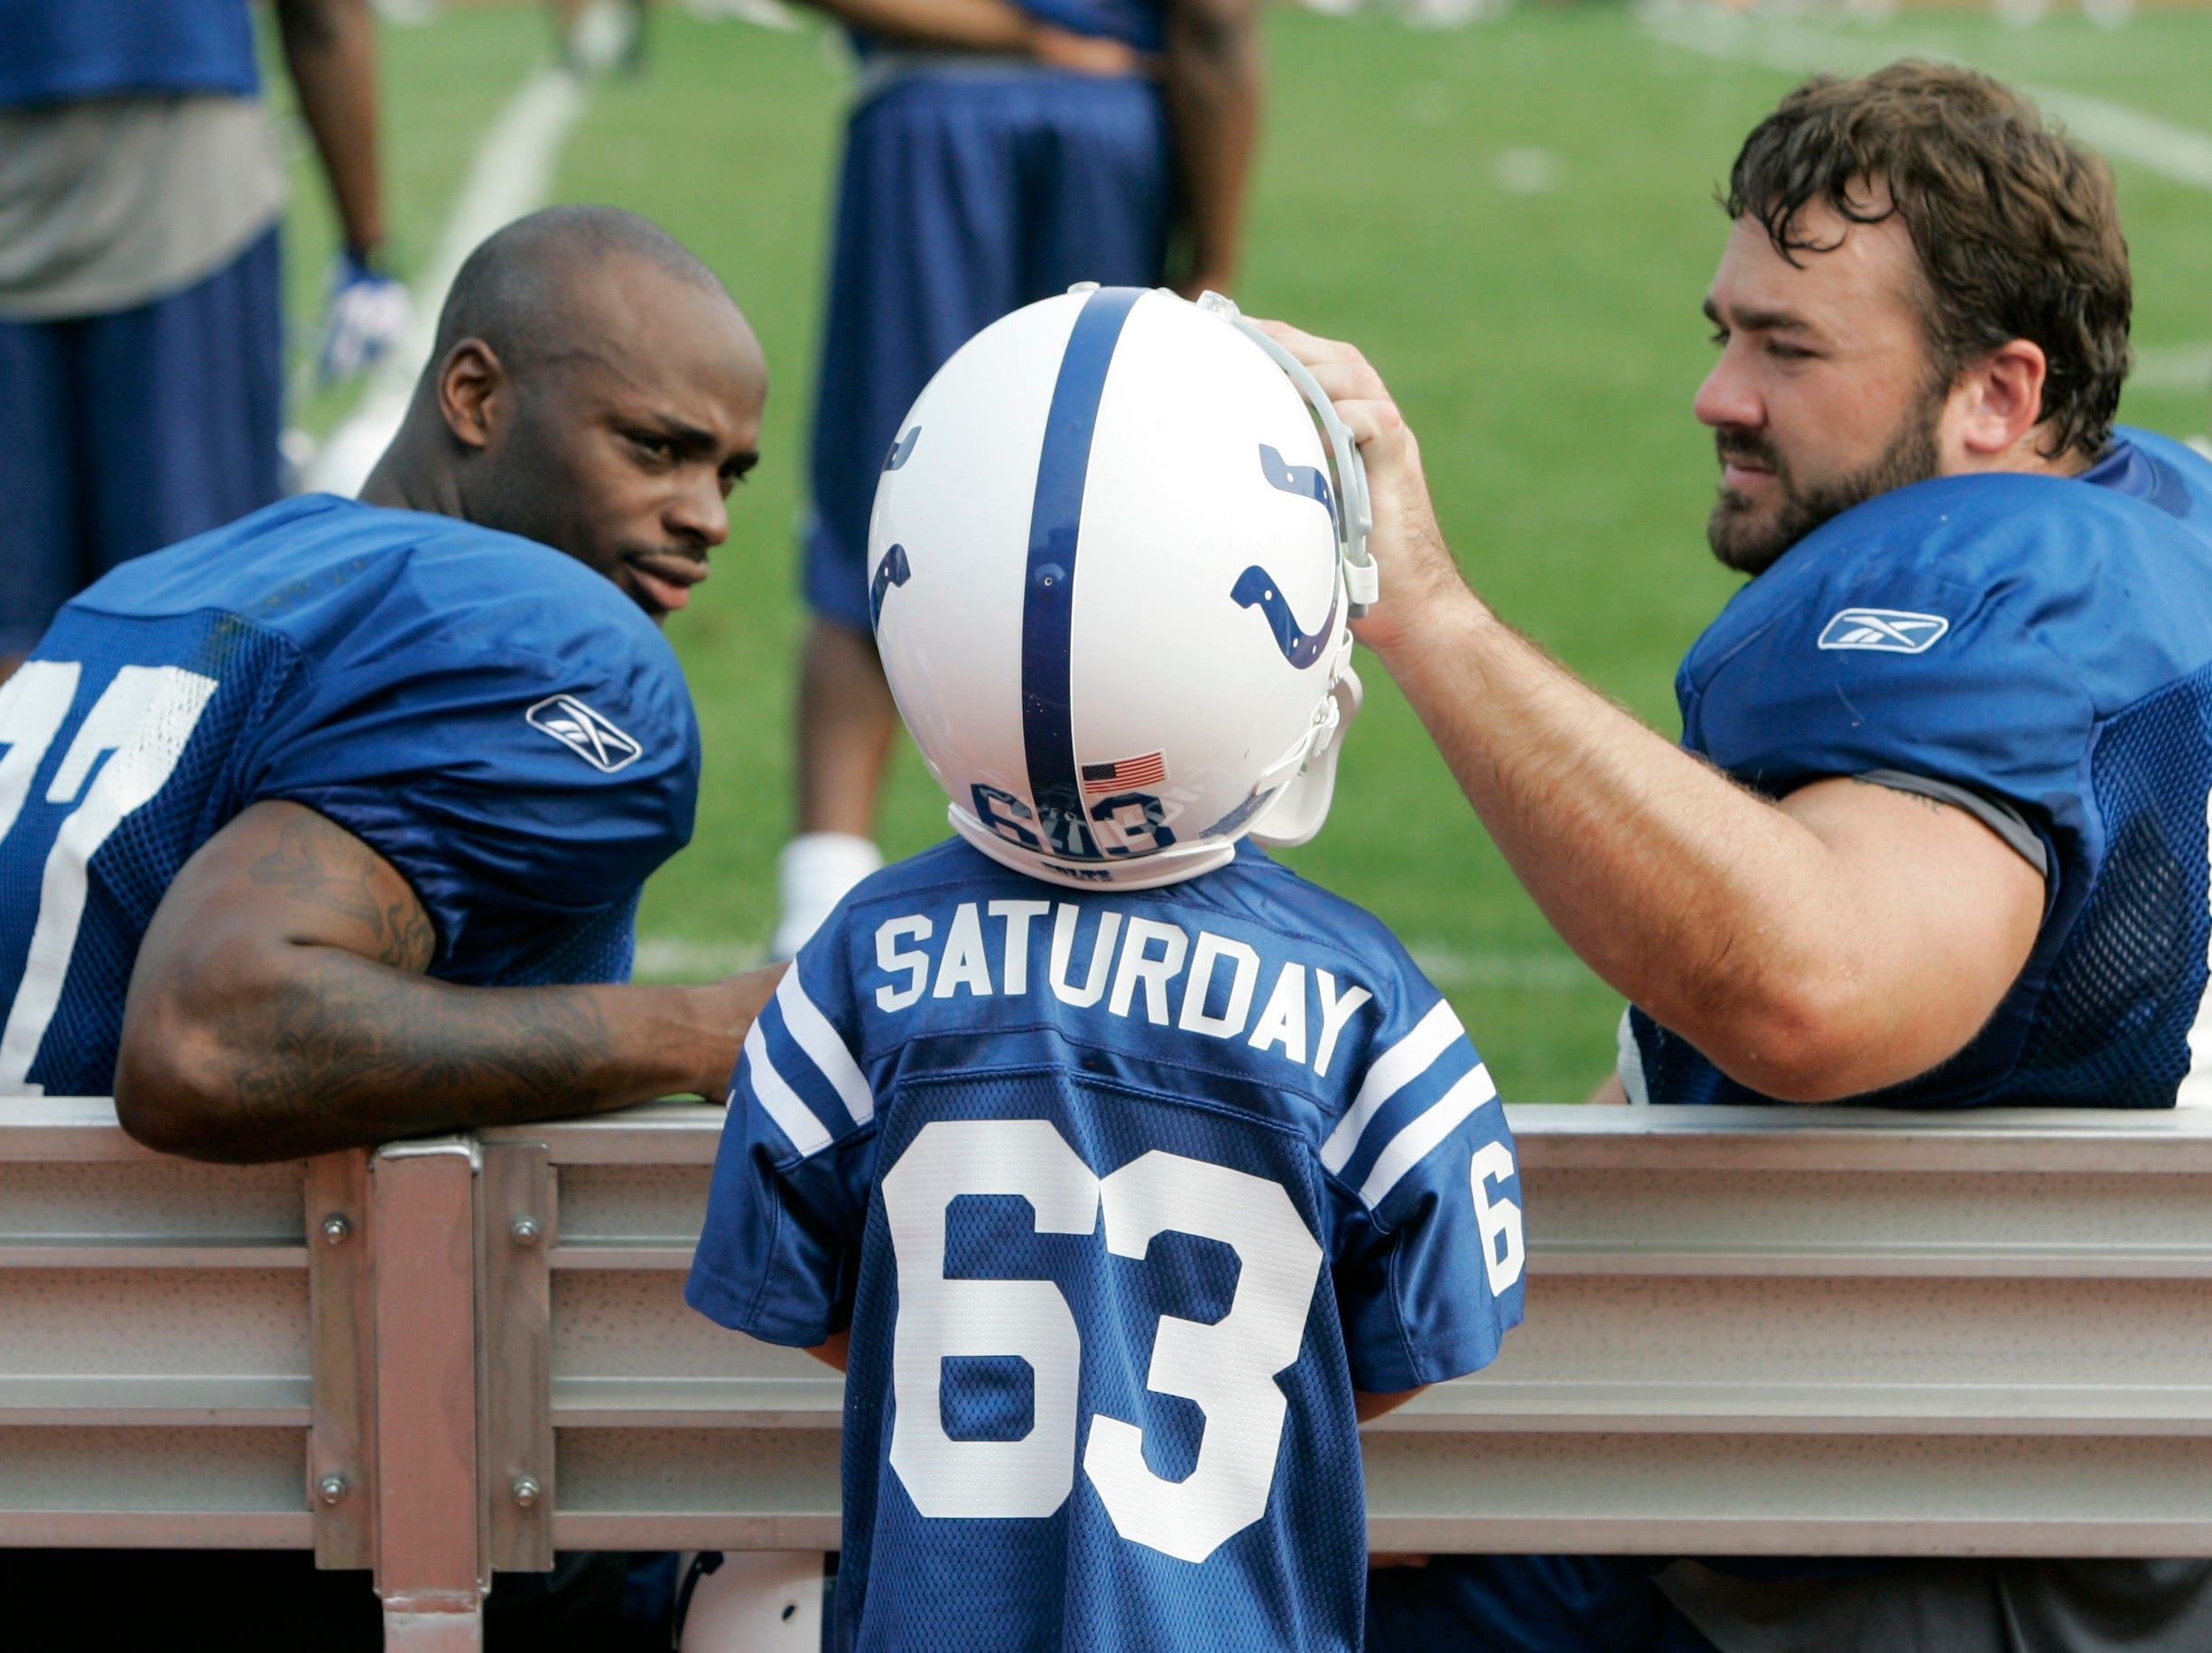 Indianapolis Colts wide receiver Reggie Wayne, left, watches as center Jeff Saturday puts his helmet on his son Jeff Saturday Jr., 6, during a scrimmage at the team's football training camp in Terre Haute, Ind., Saturday, Aug. 4, 2007.